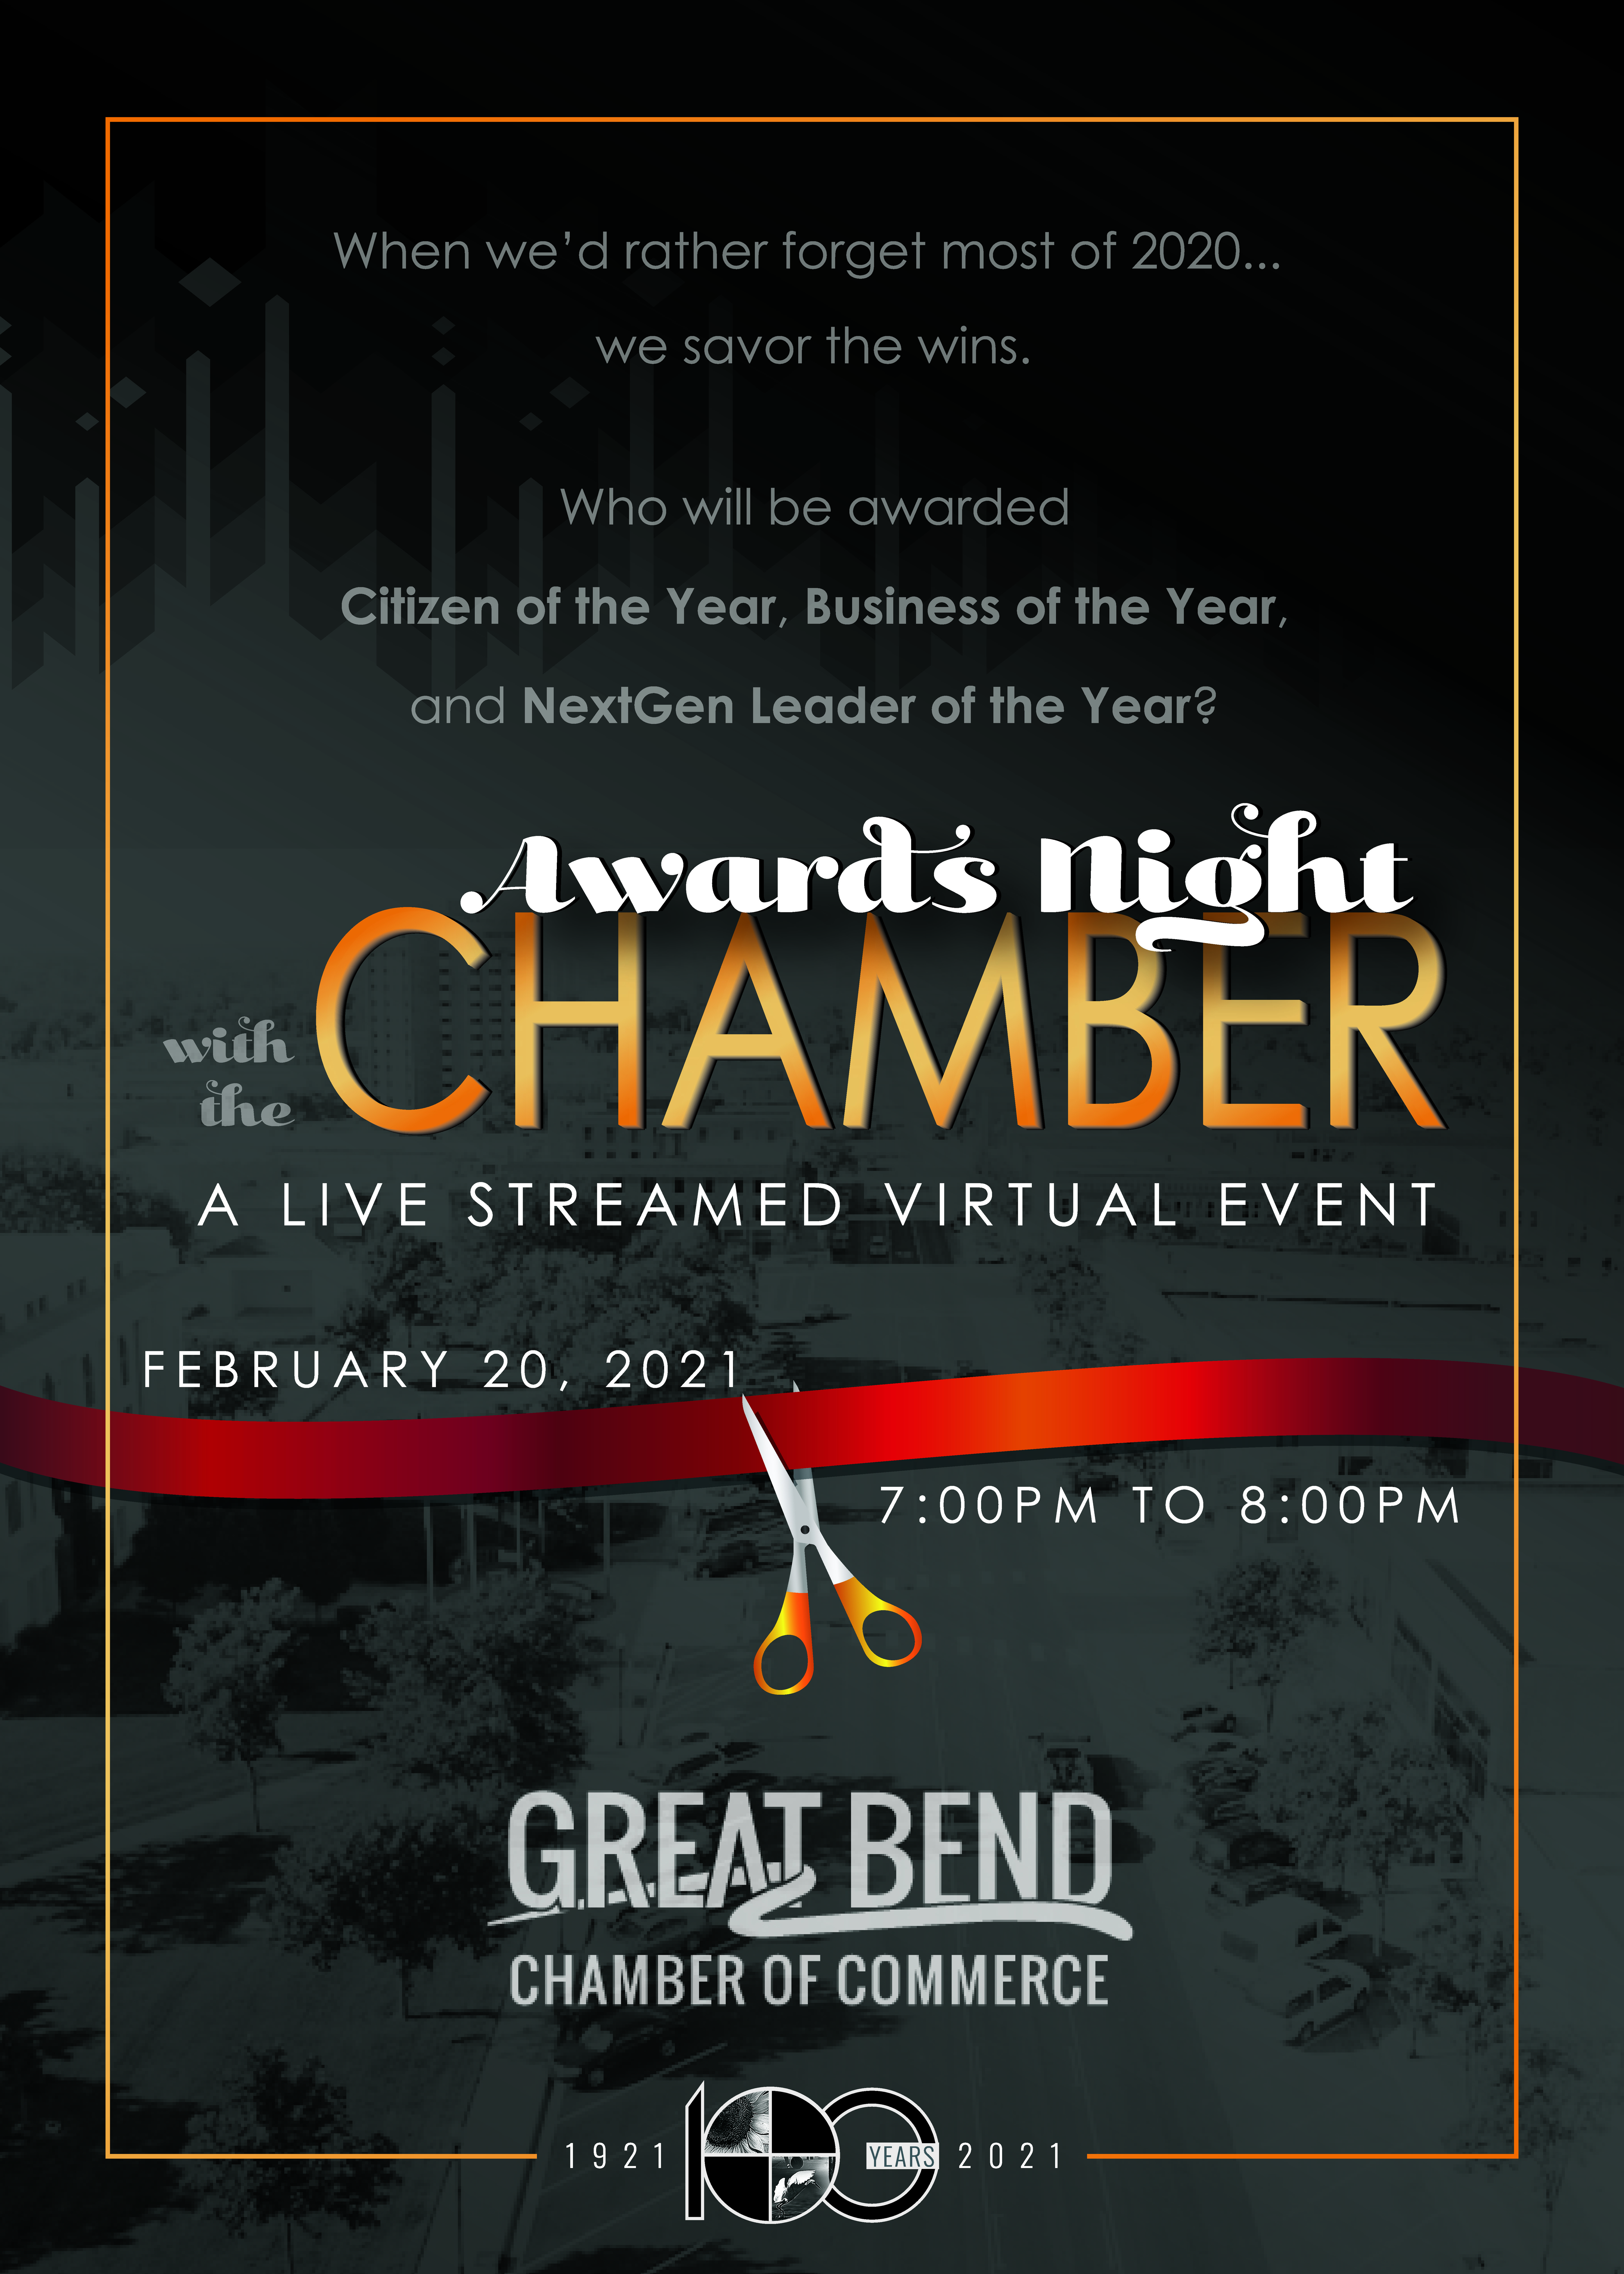 Find out who will win during Awards Night with the Chamber.